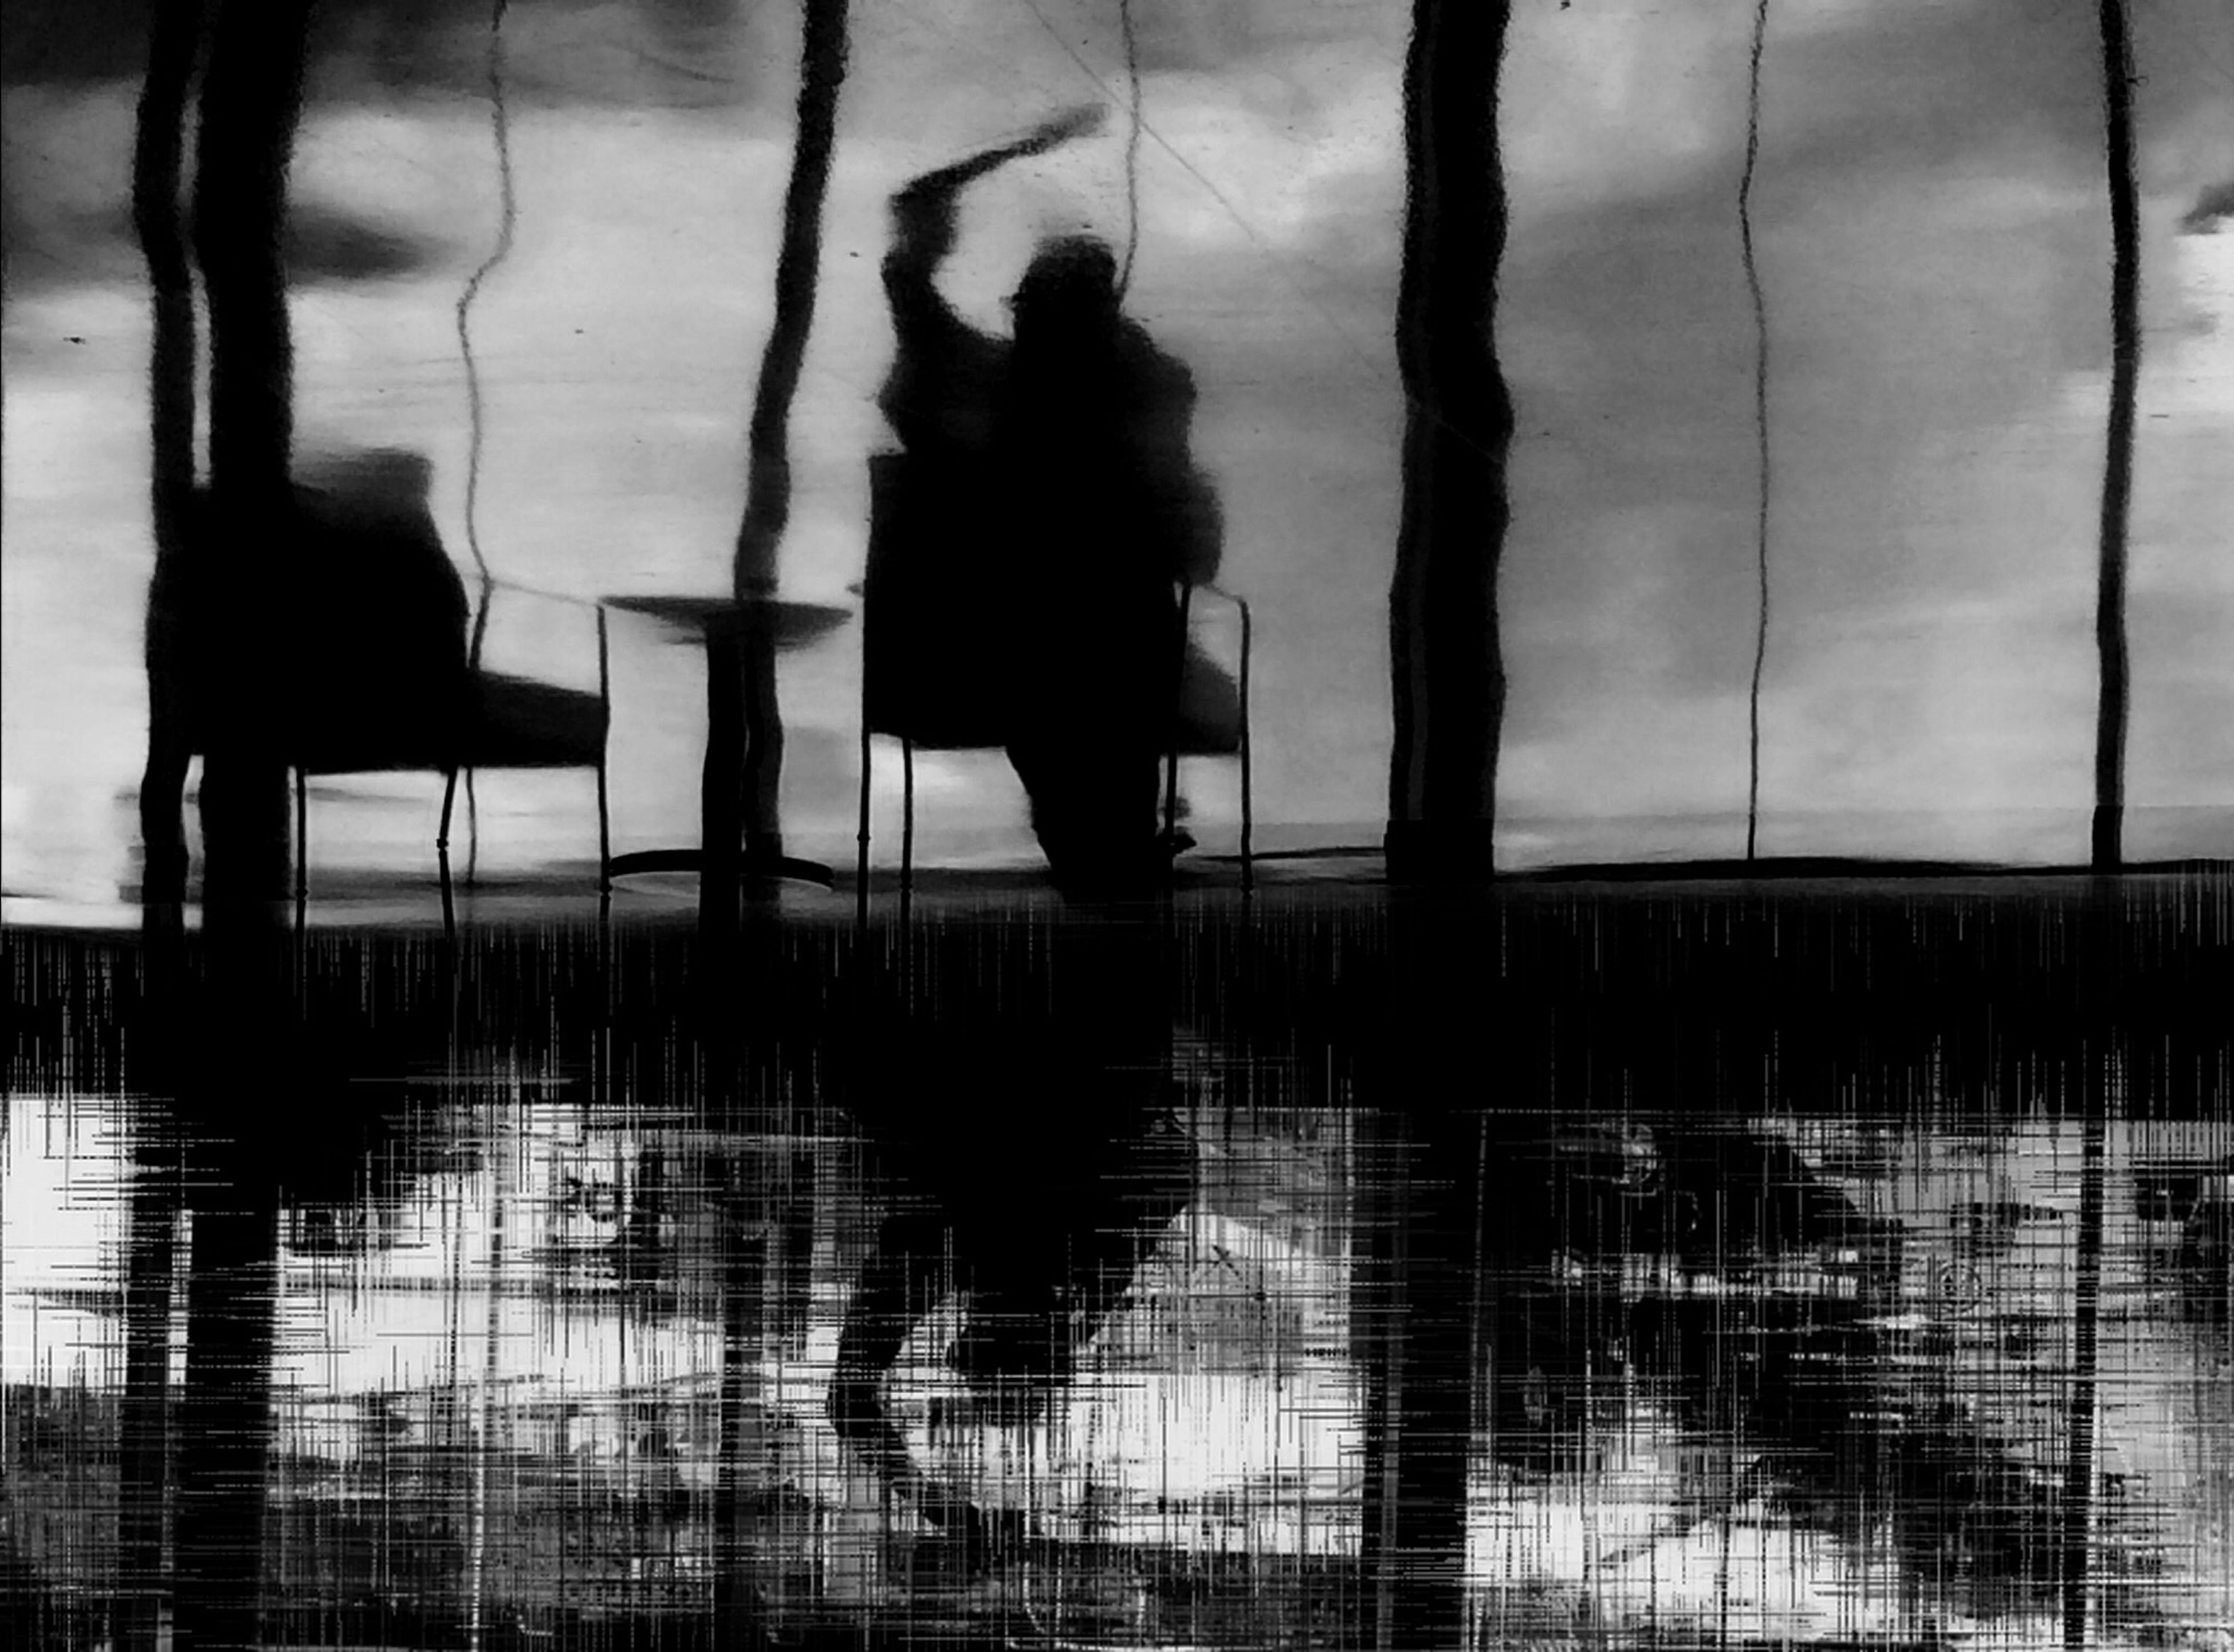 silhouette, lifestyles, reflection, men, standing, water, leisure activity, low section, person, unrecognizable person, walking, shadow, indoors, puddle, rear view, built structure